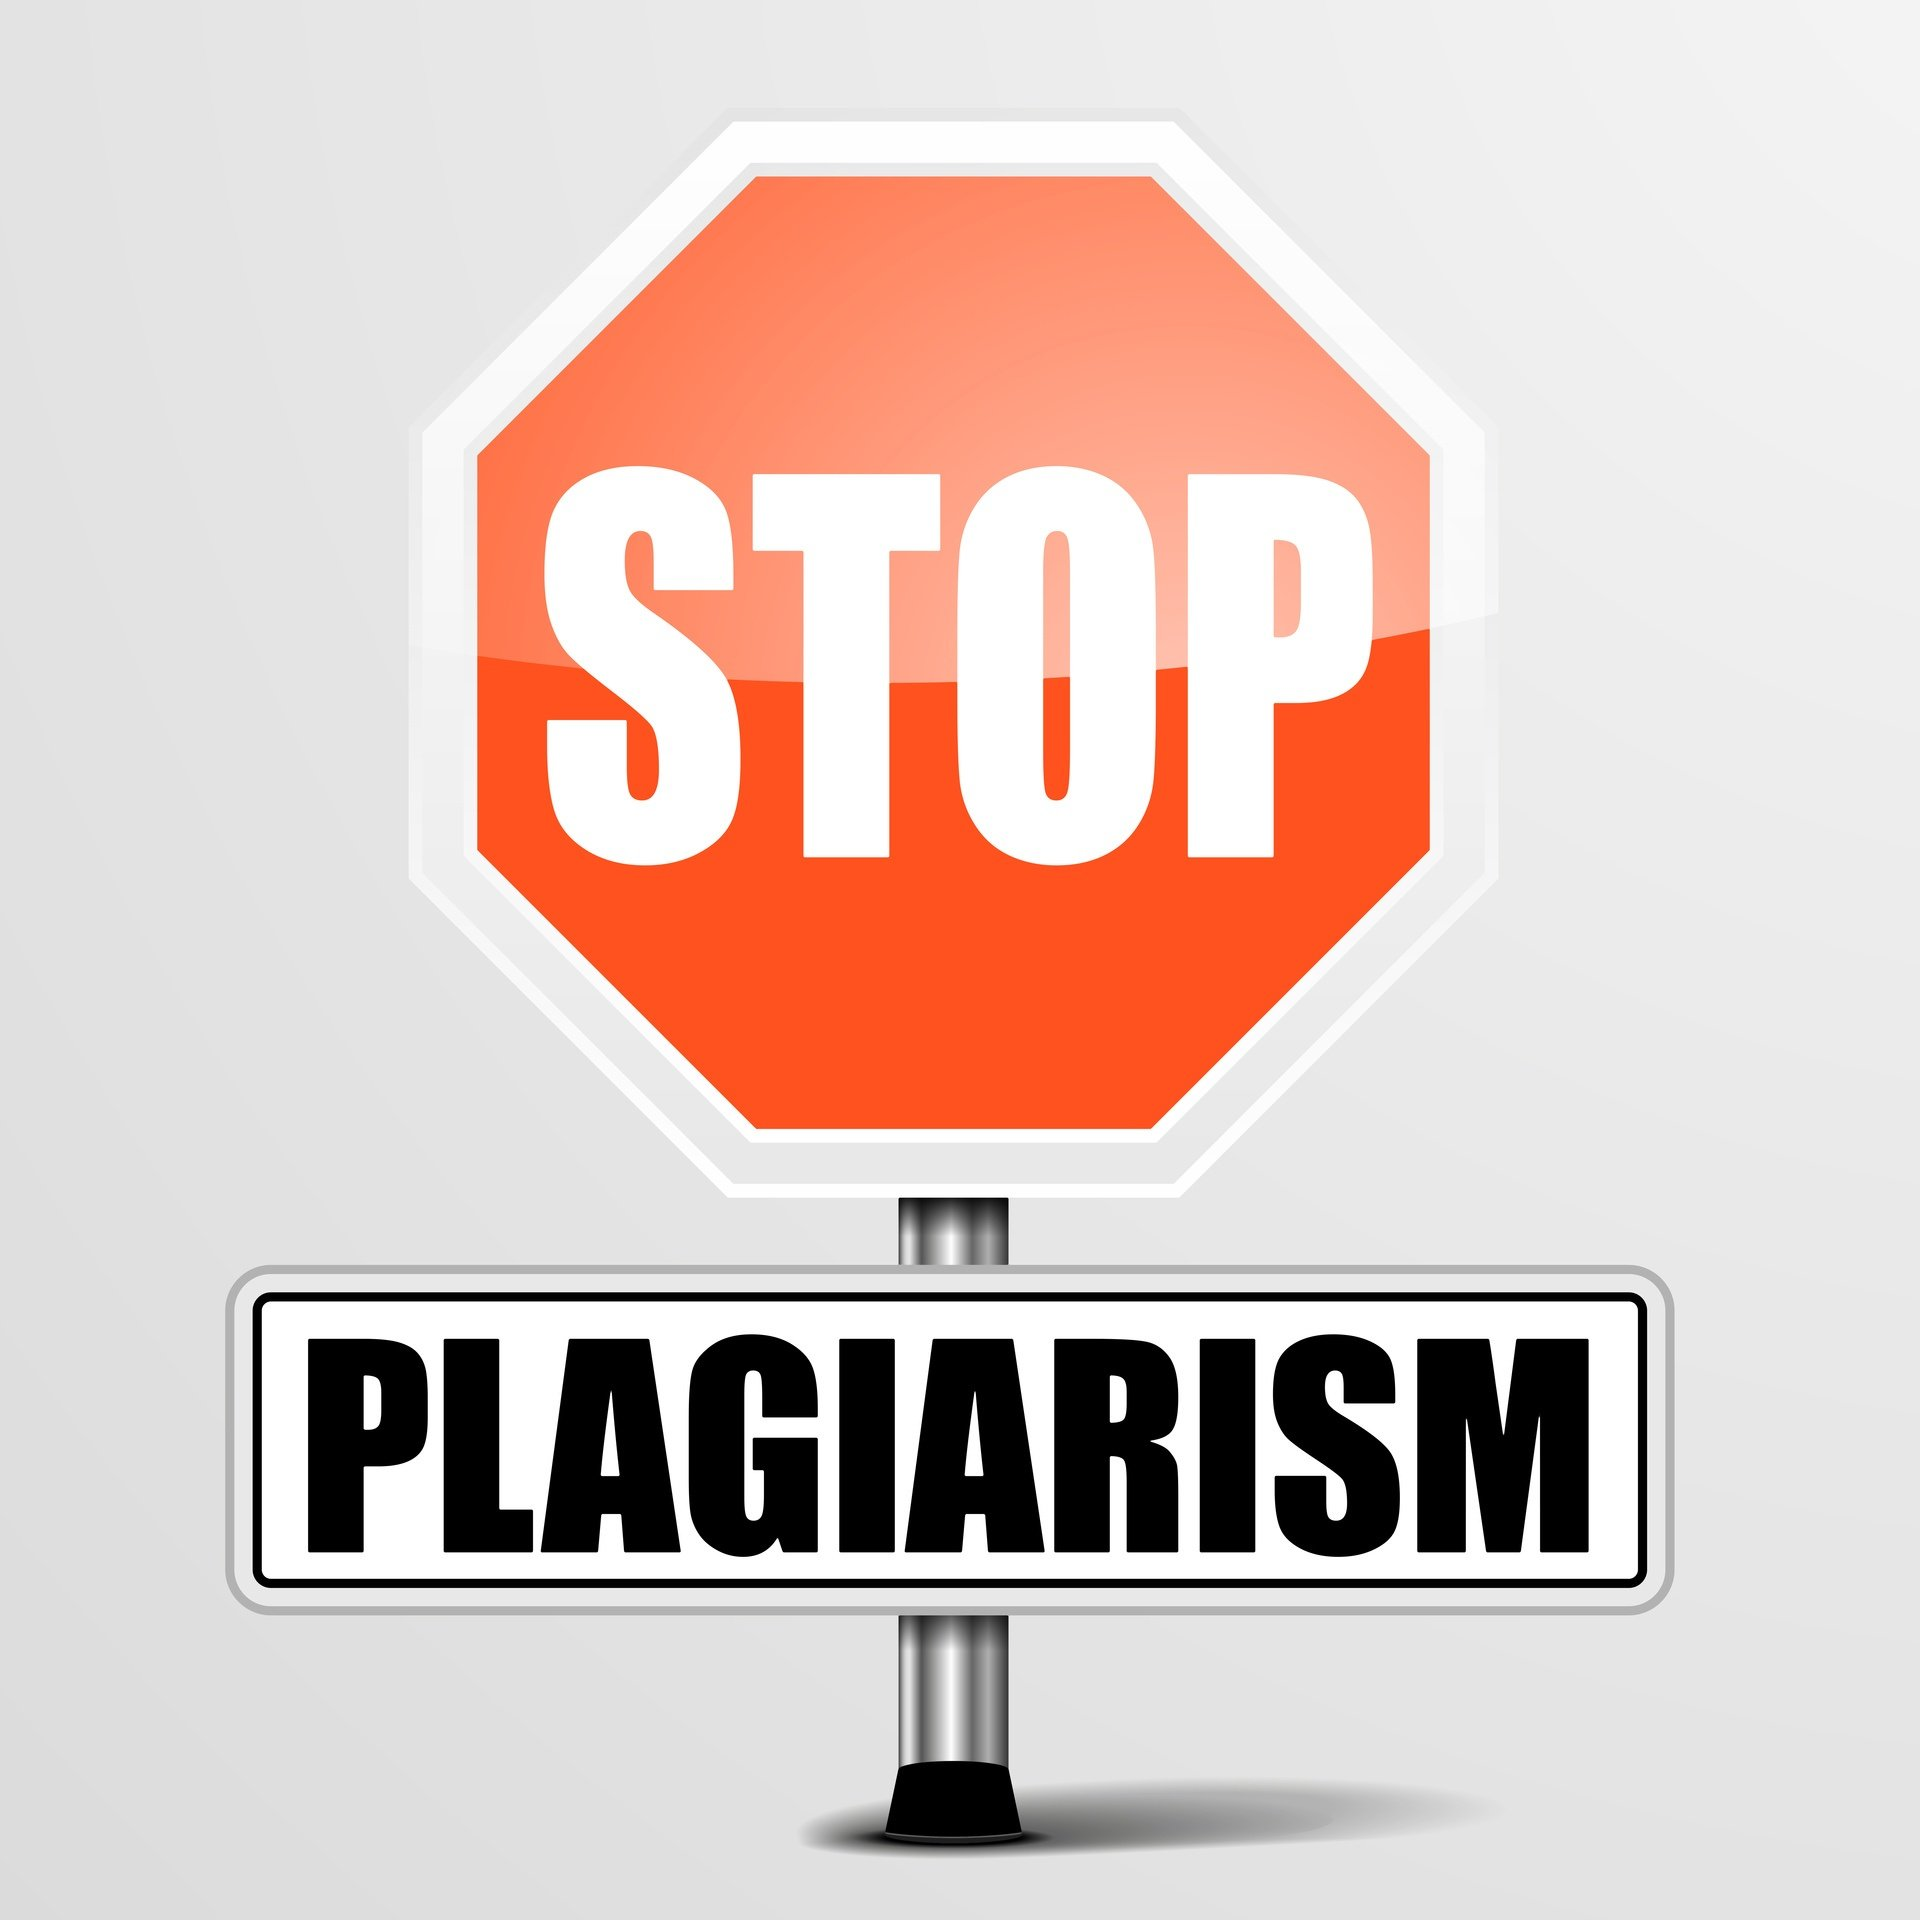 check essays for plagiarism essay checking love essay topics best  how do instructors check for plagiarism plagiarism checker multilingual plagiarism check inside higher ed plagiarism checker online check plagiarism essays